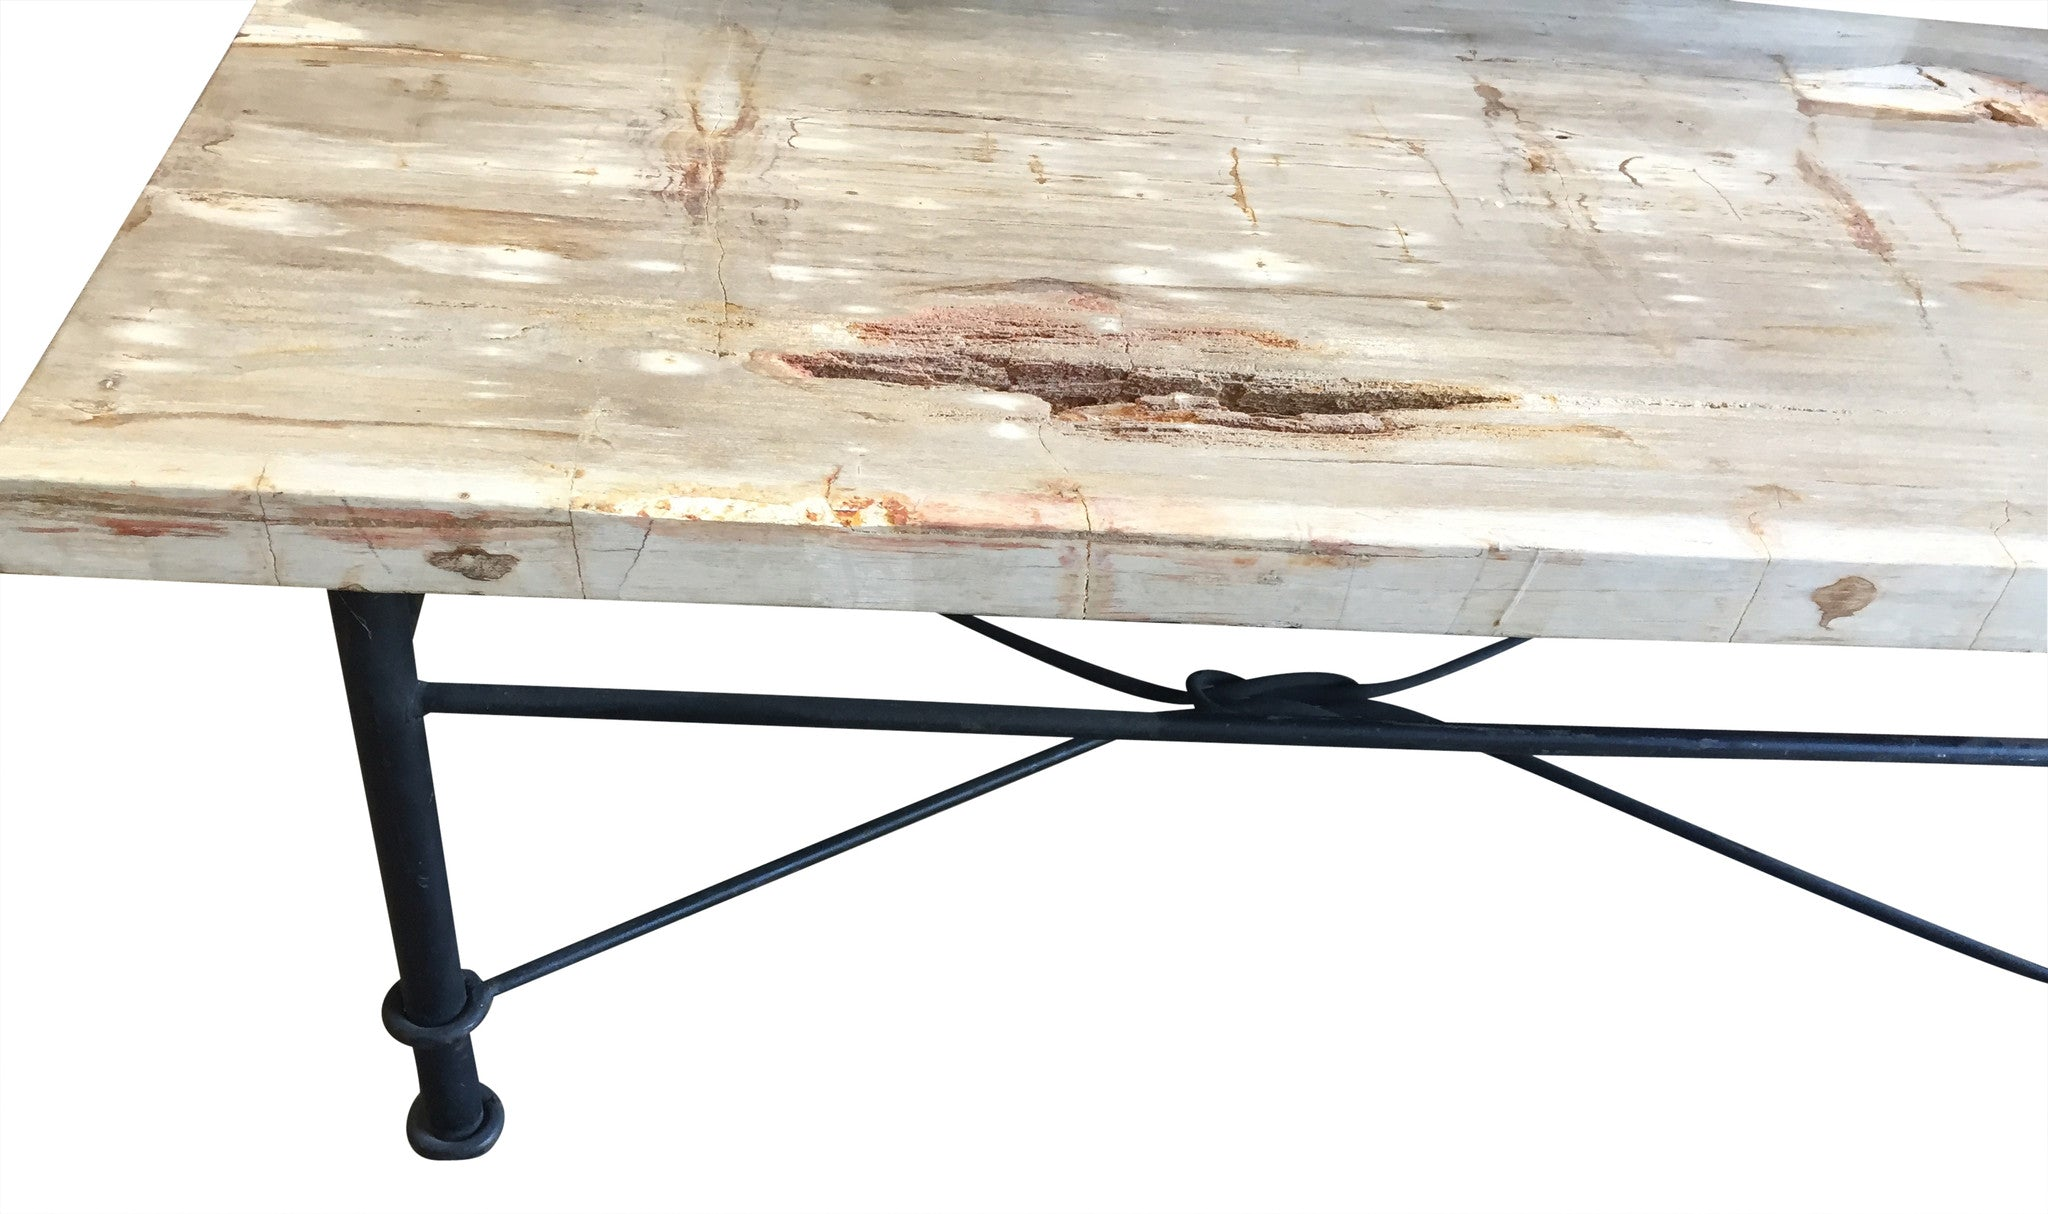 Petrified Wood Coffee Table with Iron Base Haskell Antiques